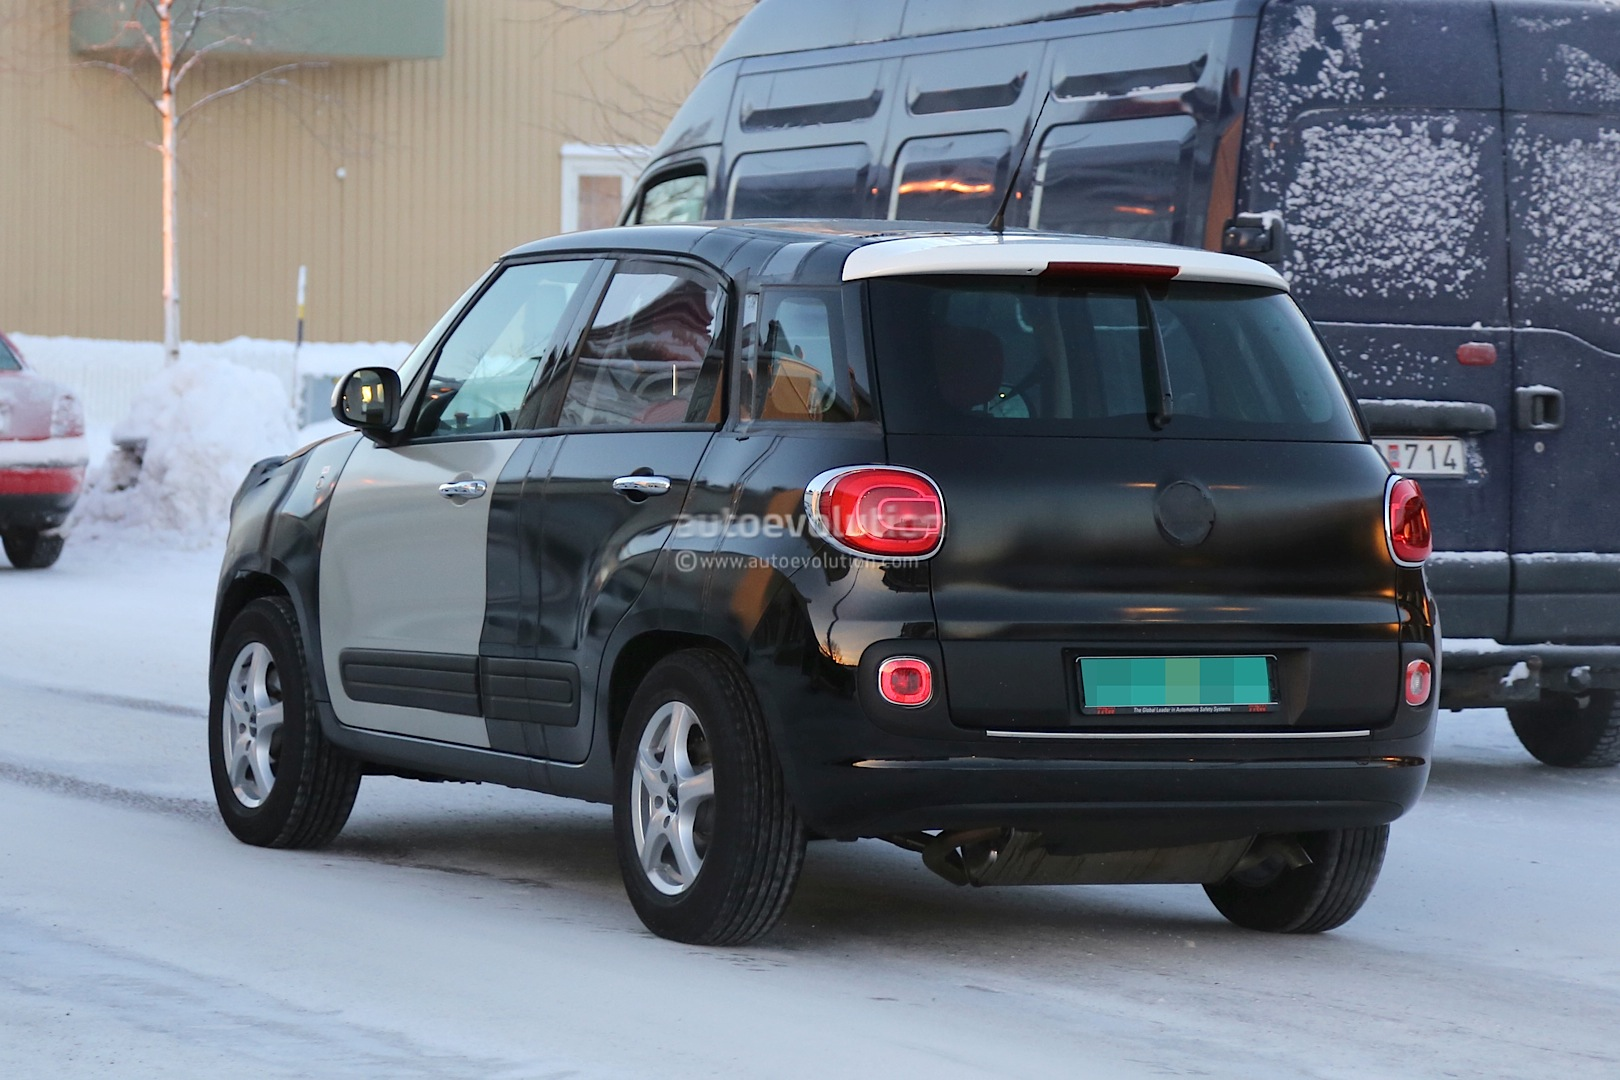 2014 - [Jeep] Renegade - Page 2 Spyshots-2015-jeep-b-suv-endures-the-cold-in-scandinavia_13